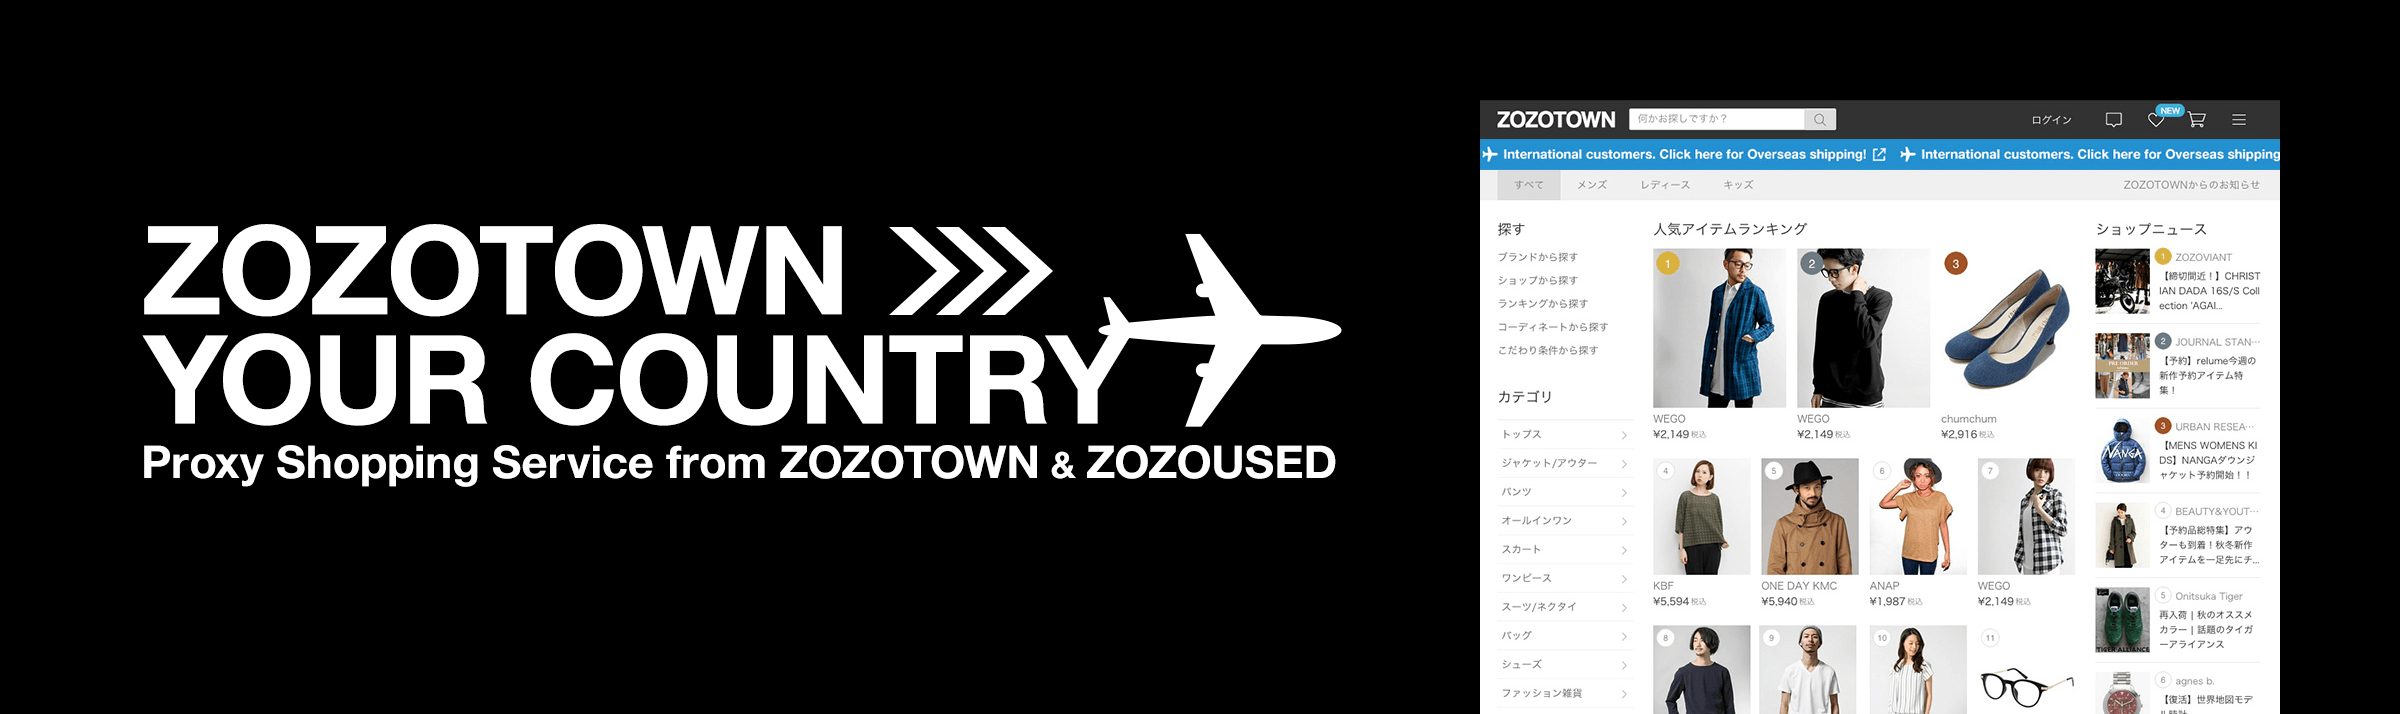 Proxy Shopping Service from ZOZOTOWN and ZOZOUSED